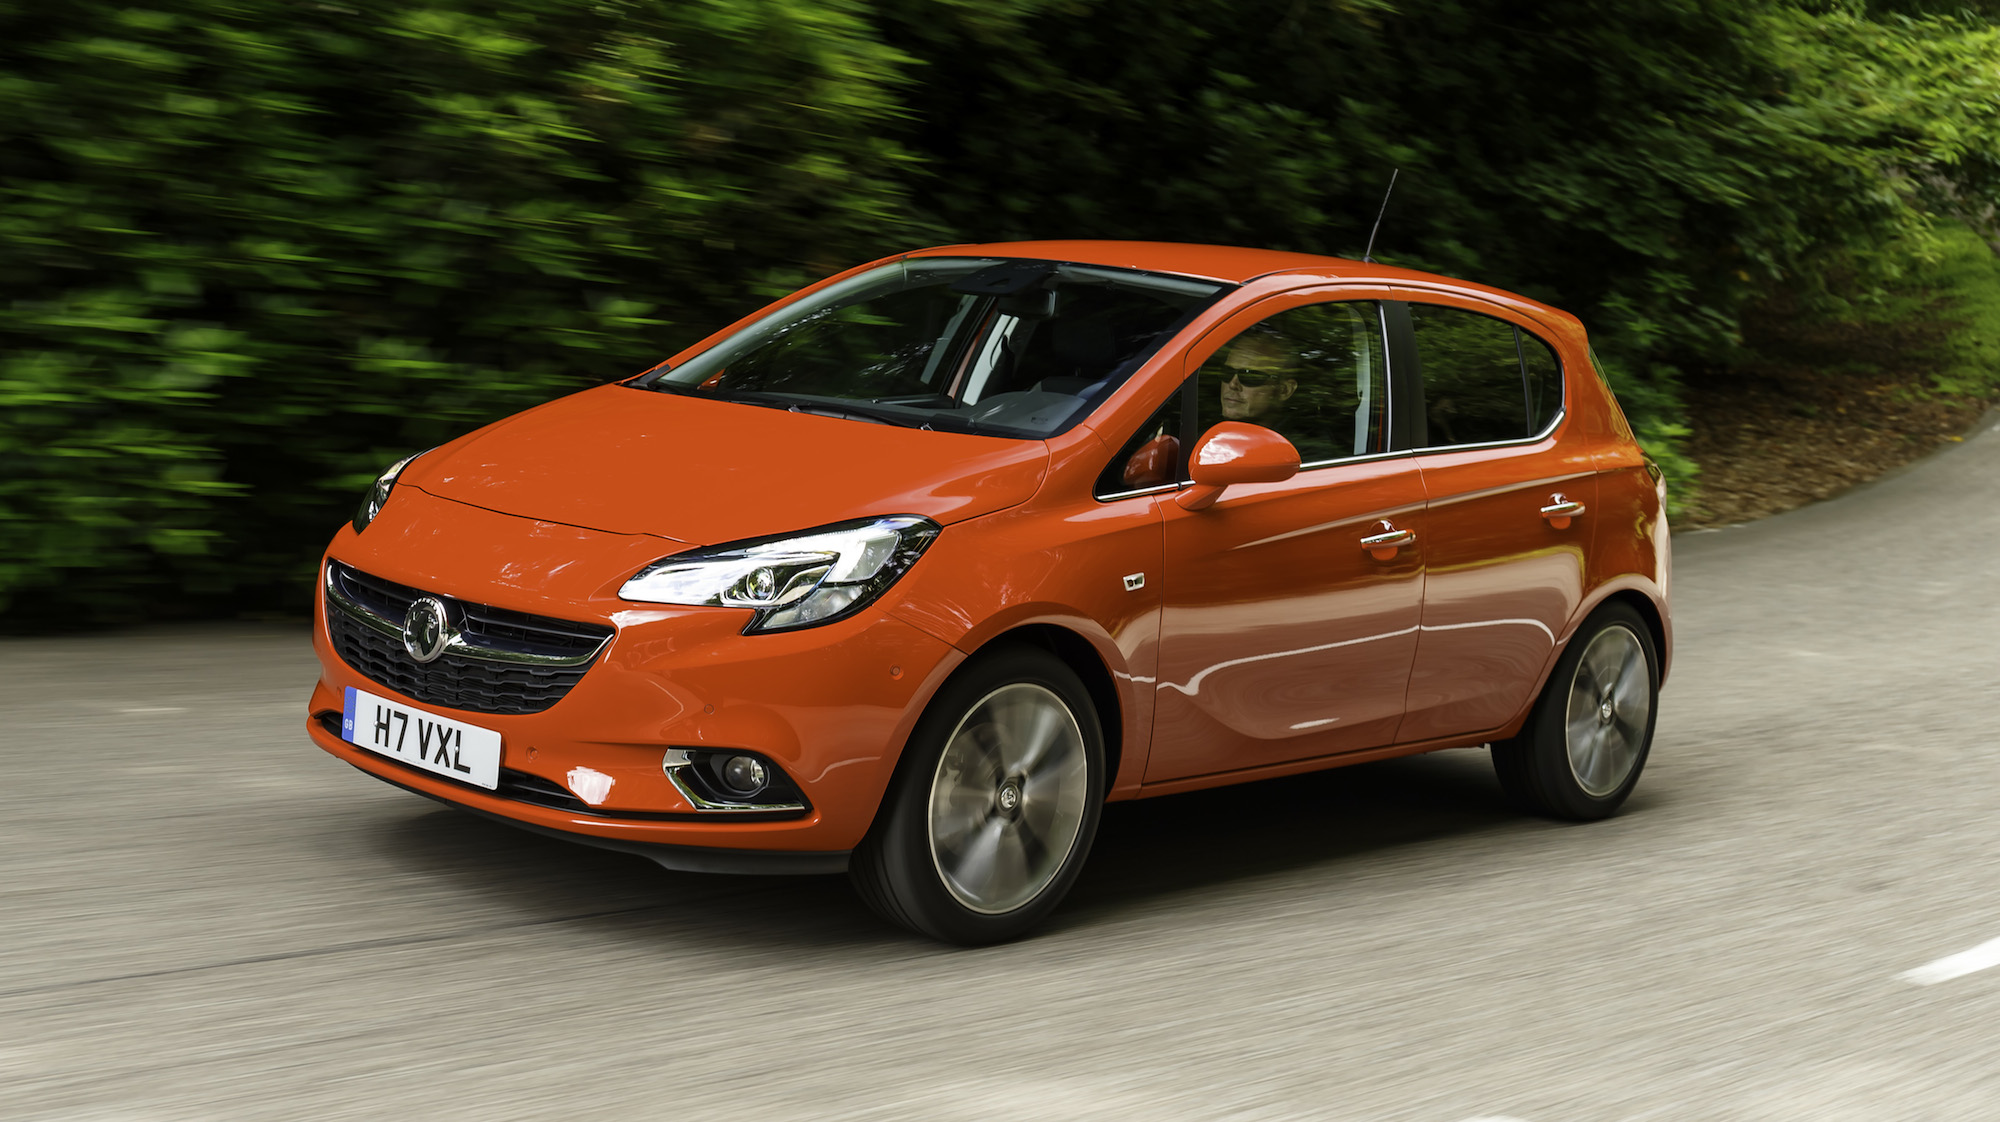 2015 Opel Corsa unveiled : Could it join Holden model onslaught